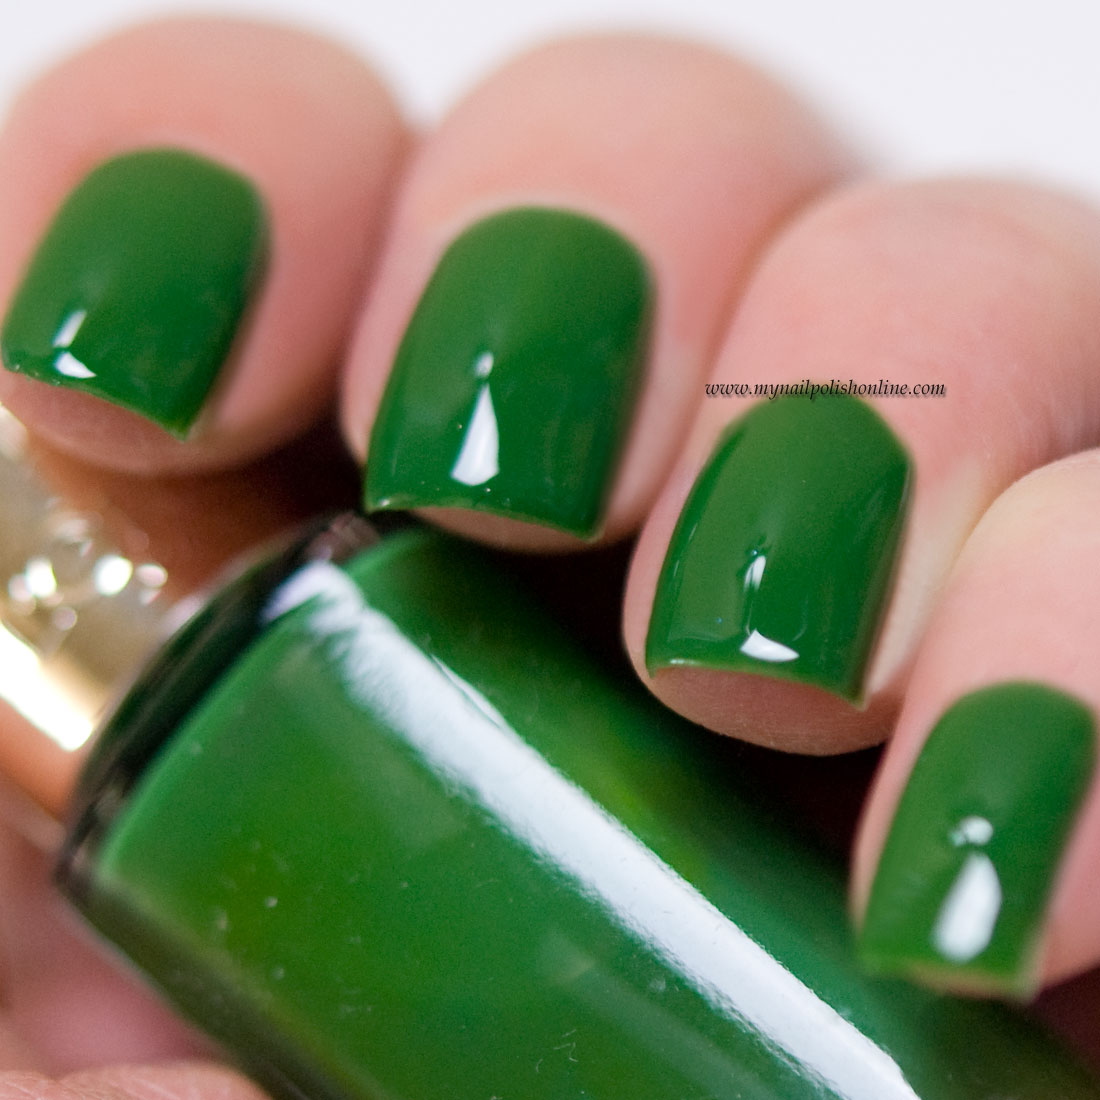 L'Oreal - Green Couture